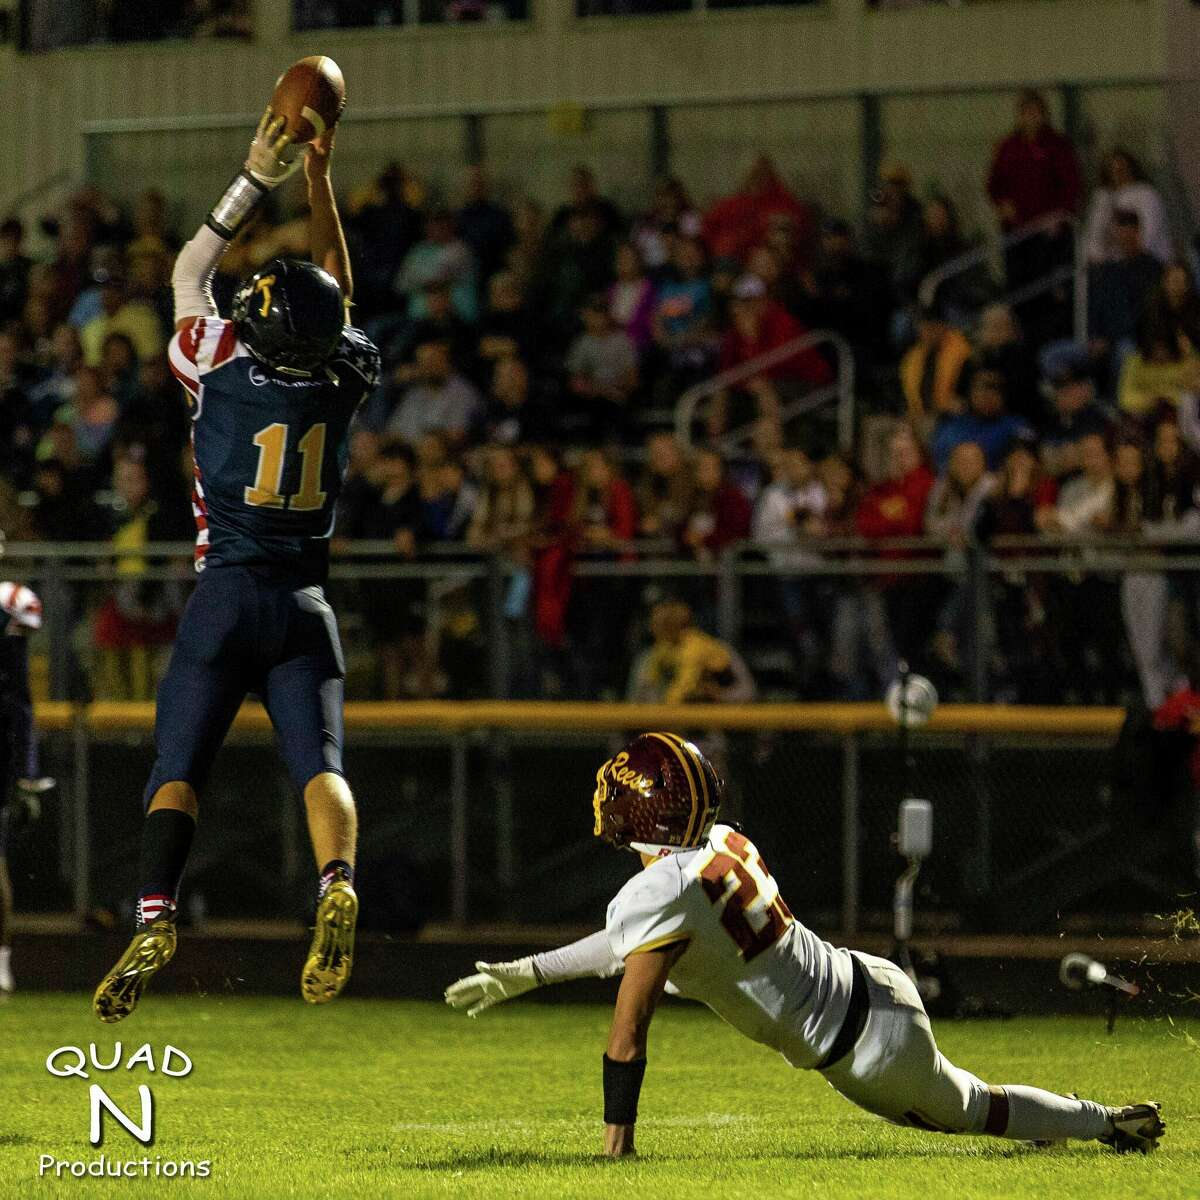 Bad Axe's Keaton Braun catches a pass (Quad N Productions/For the Tribune)